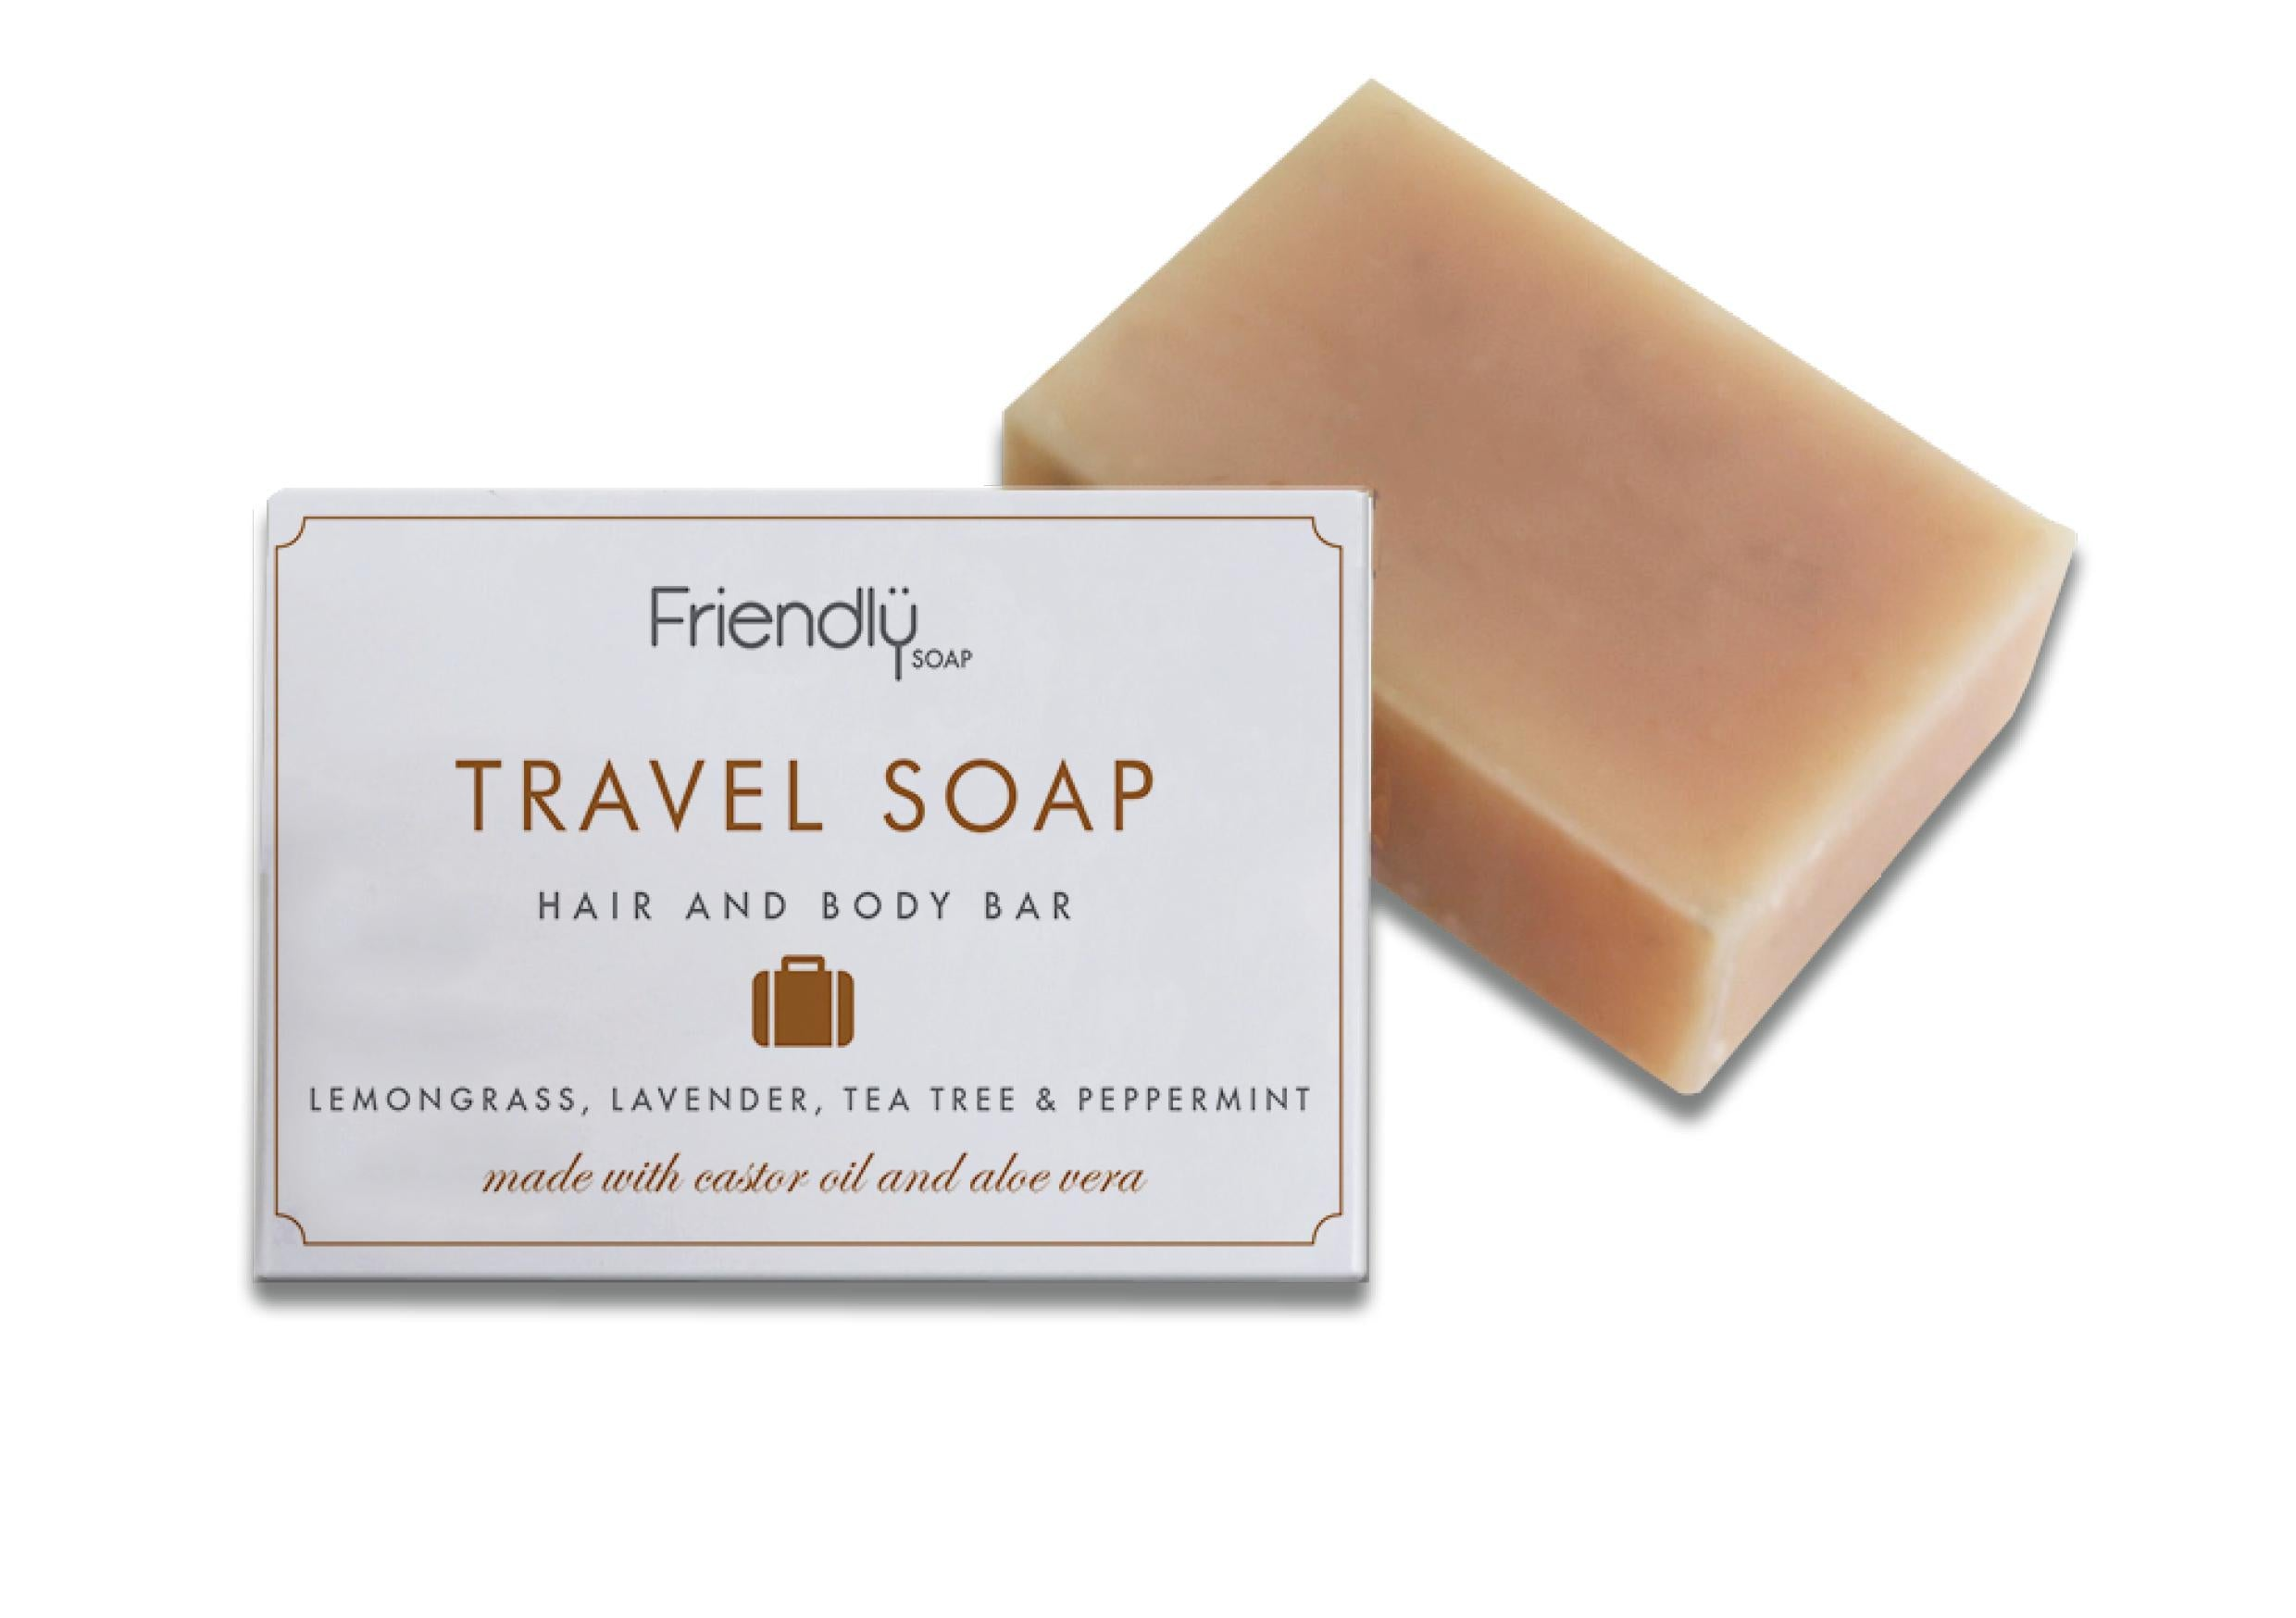 Friendly Soap Travel Soap Bar 3-in-1 Matkasaippua n. 90g